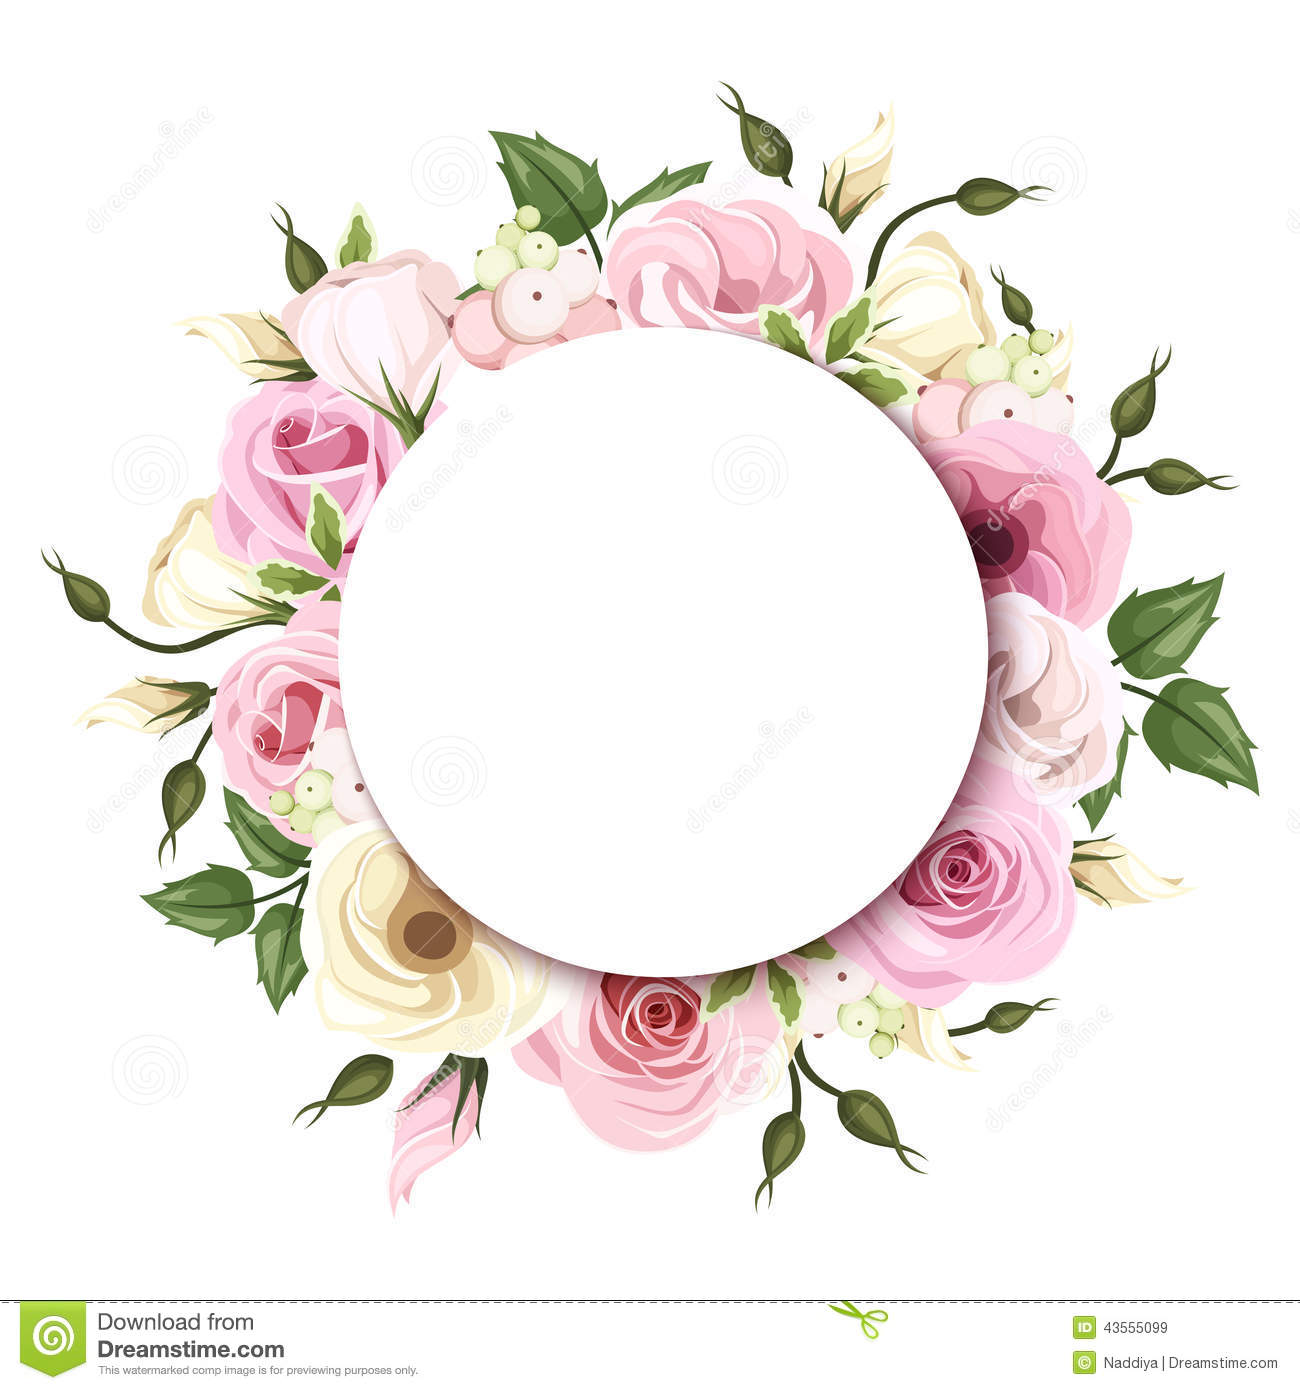 Background With Pink And White Roses And Lisianthus